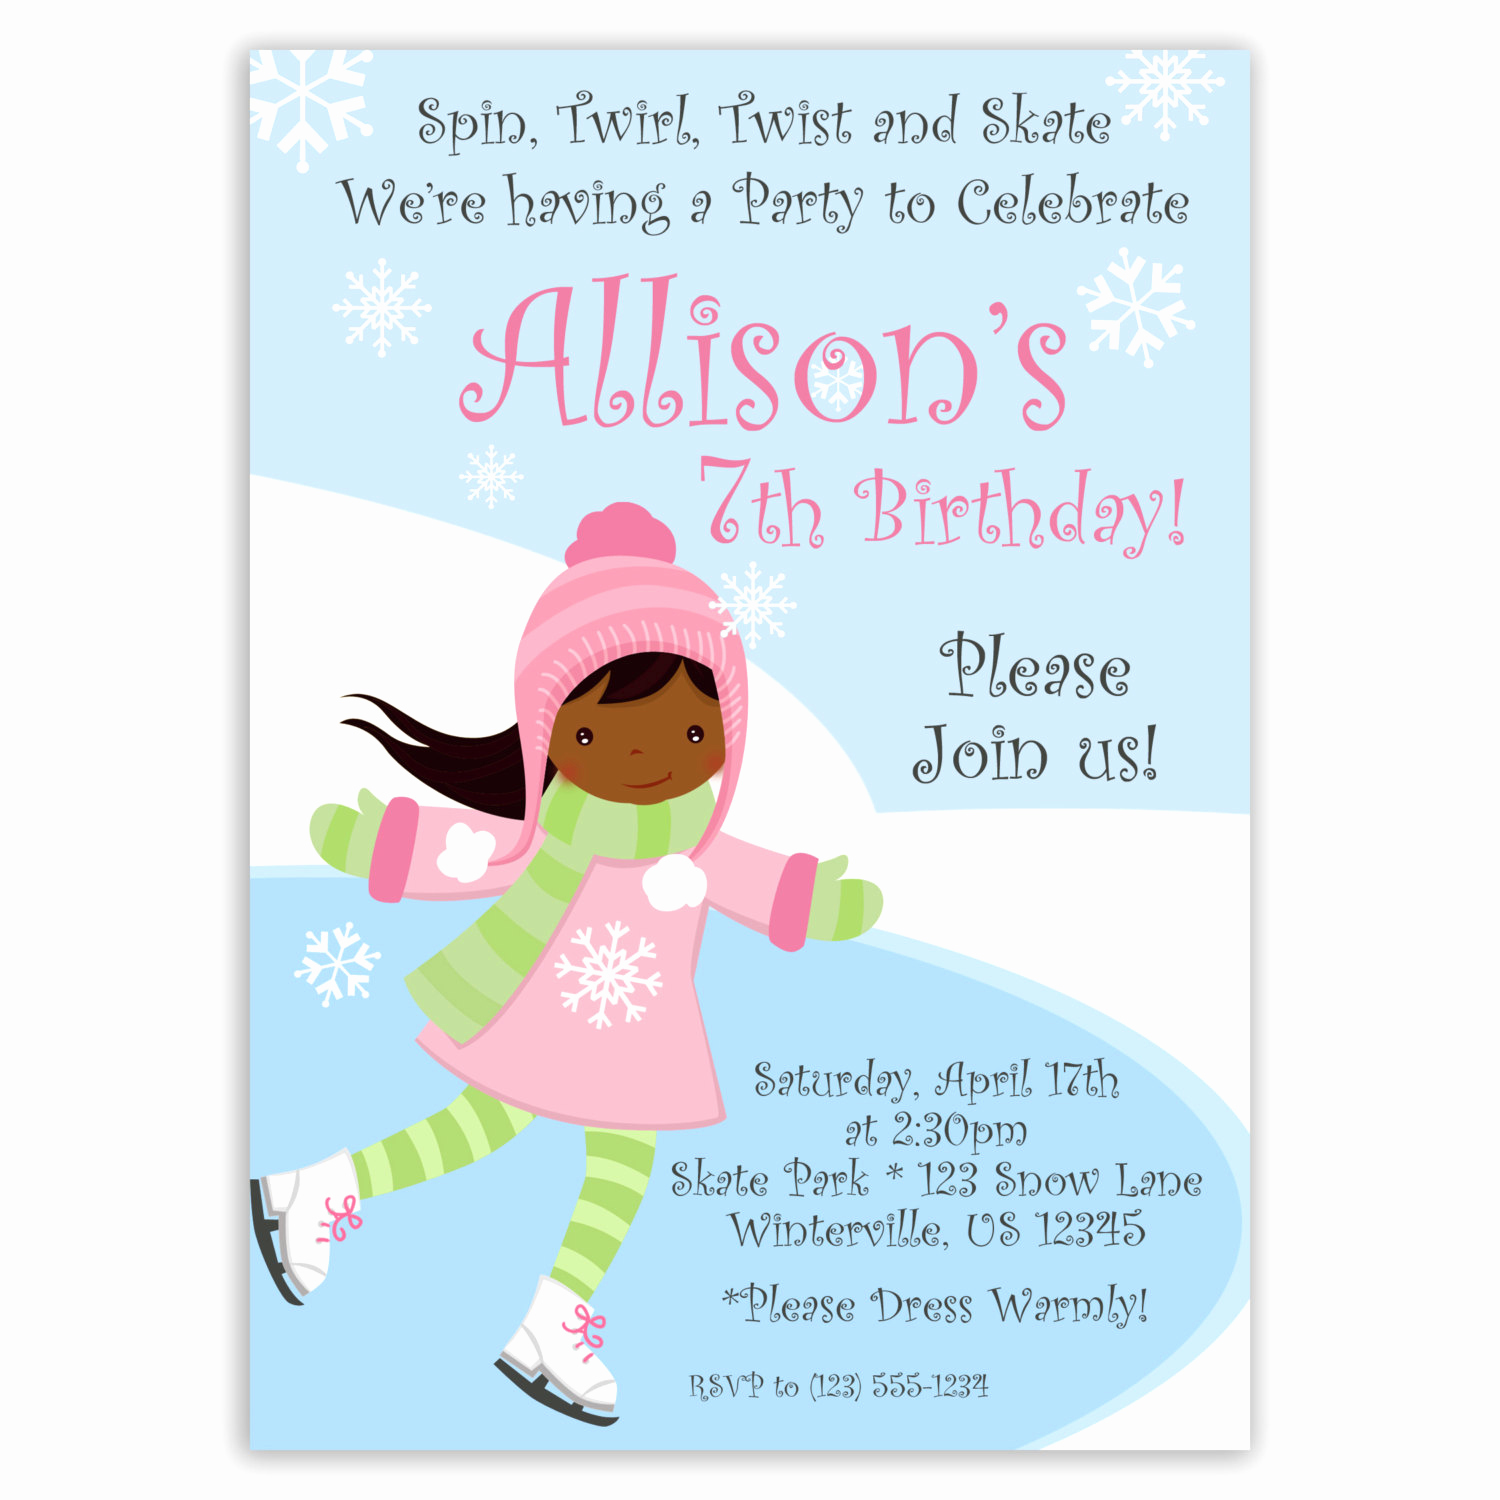 Ice Skate Party Invitation New Ice Skating Invitation Frozen Winter Pond and Snow Cute